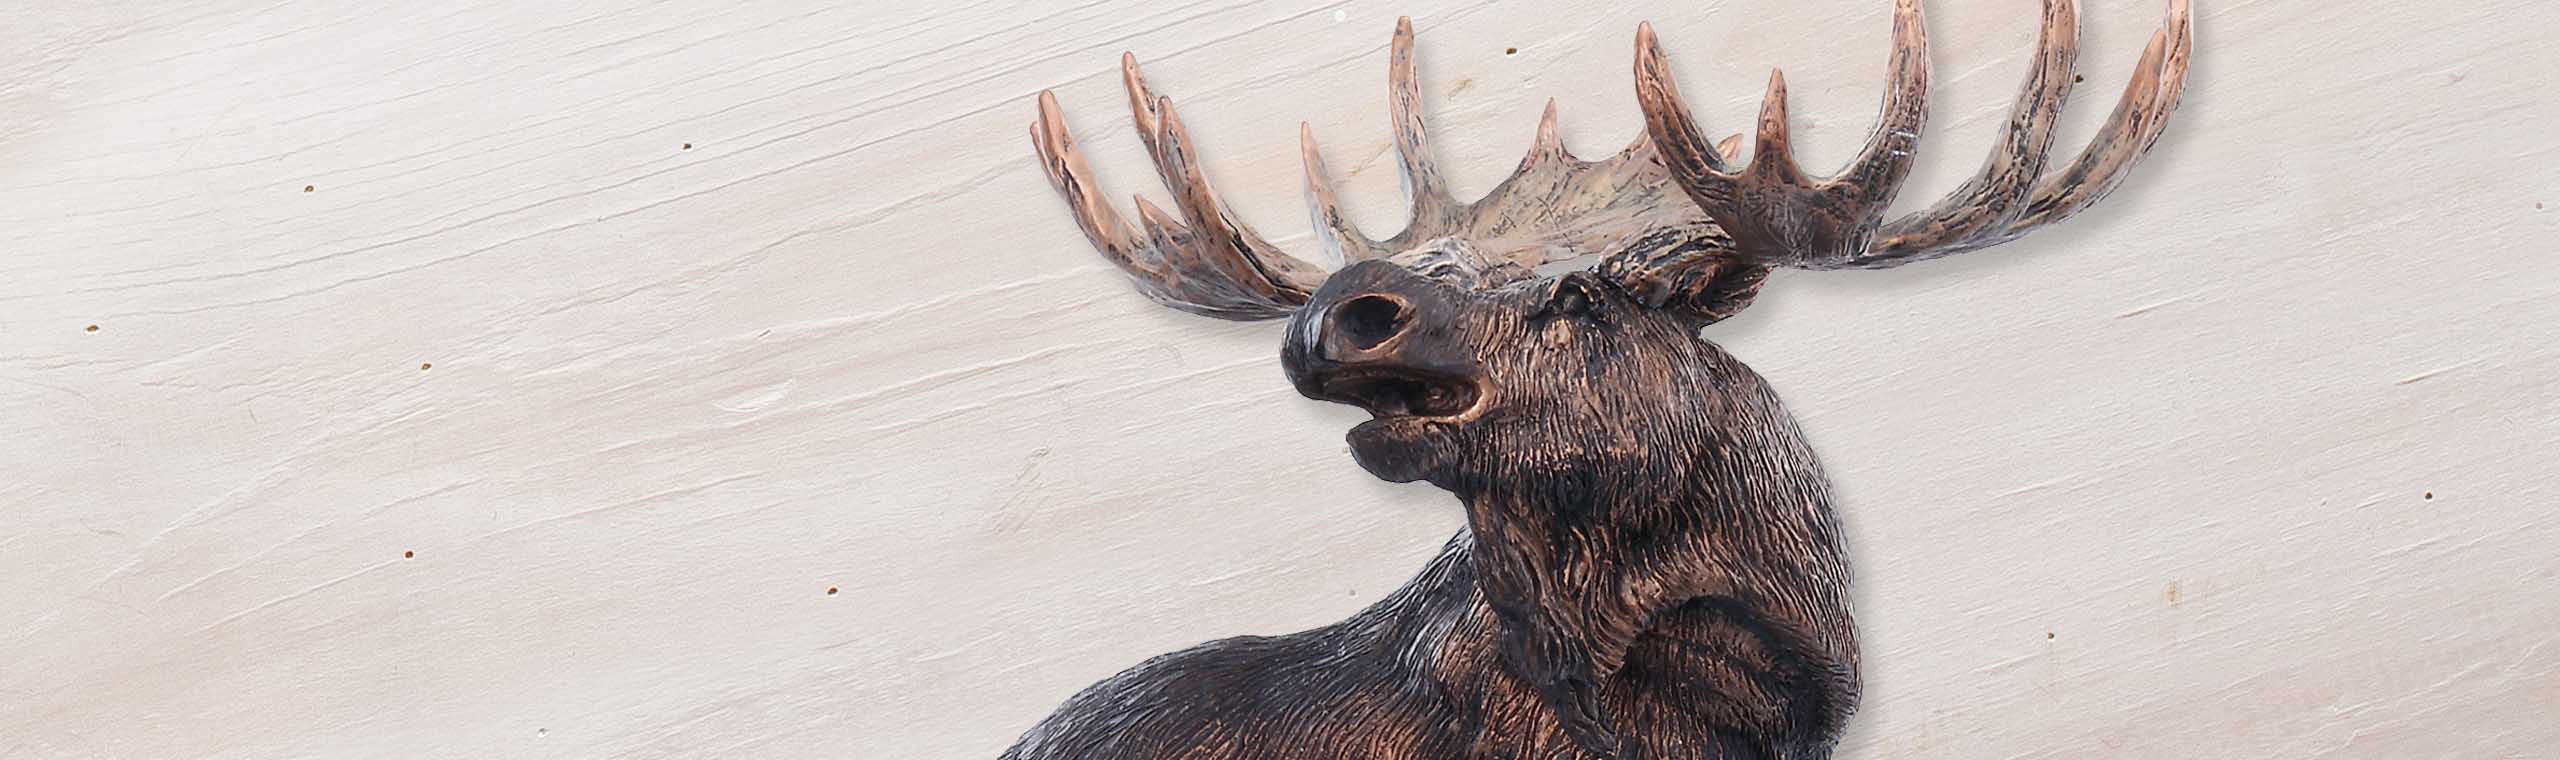 Closeup detail of bronze moose sculpture